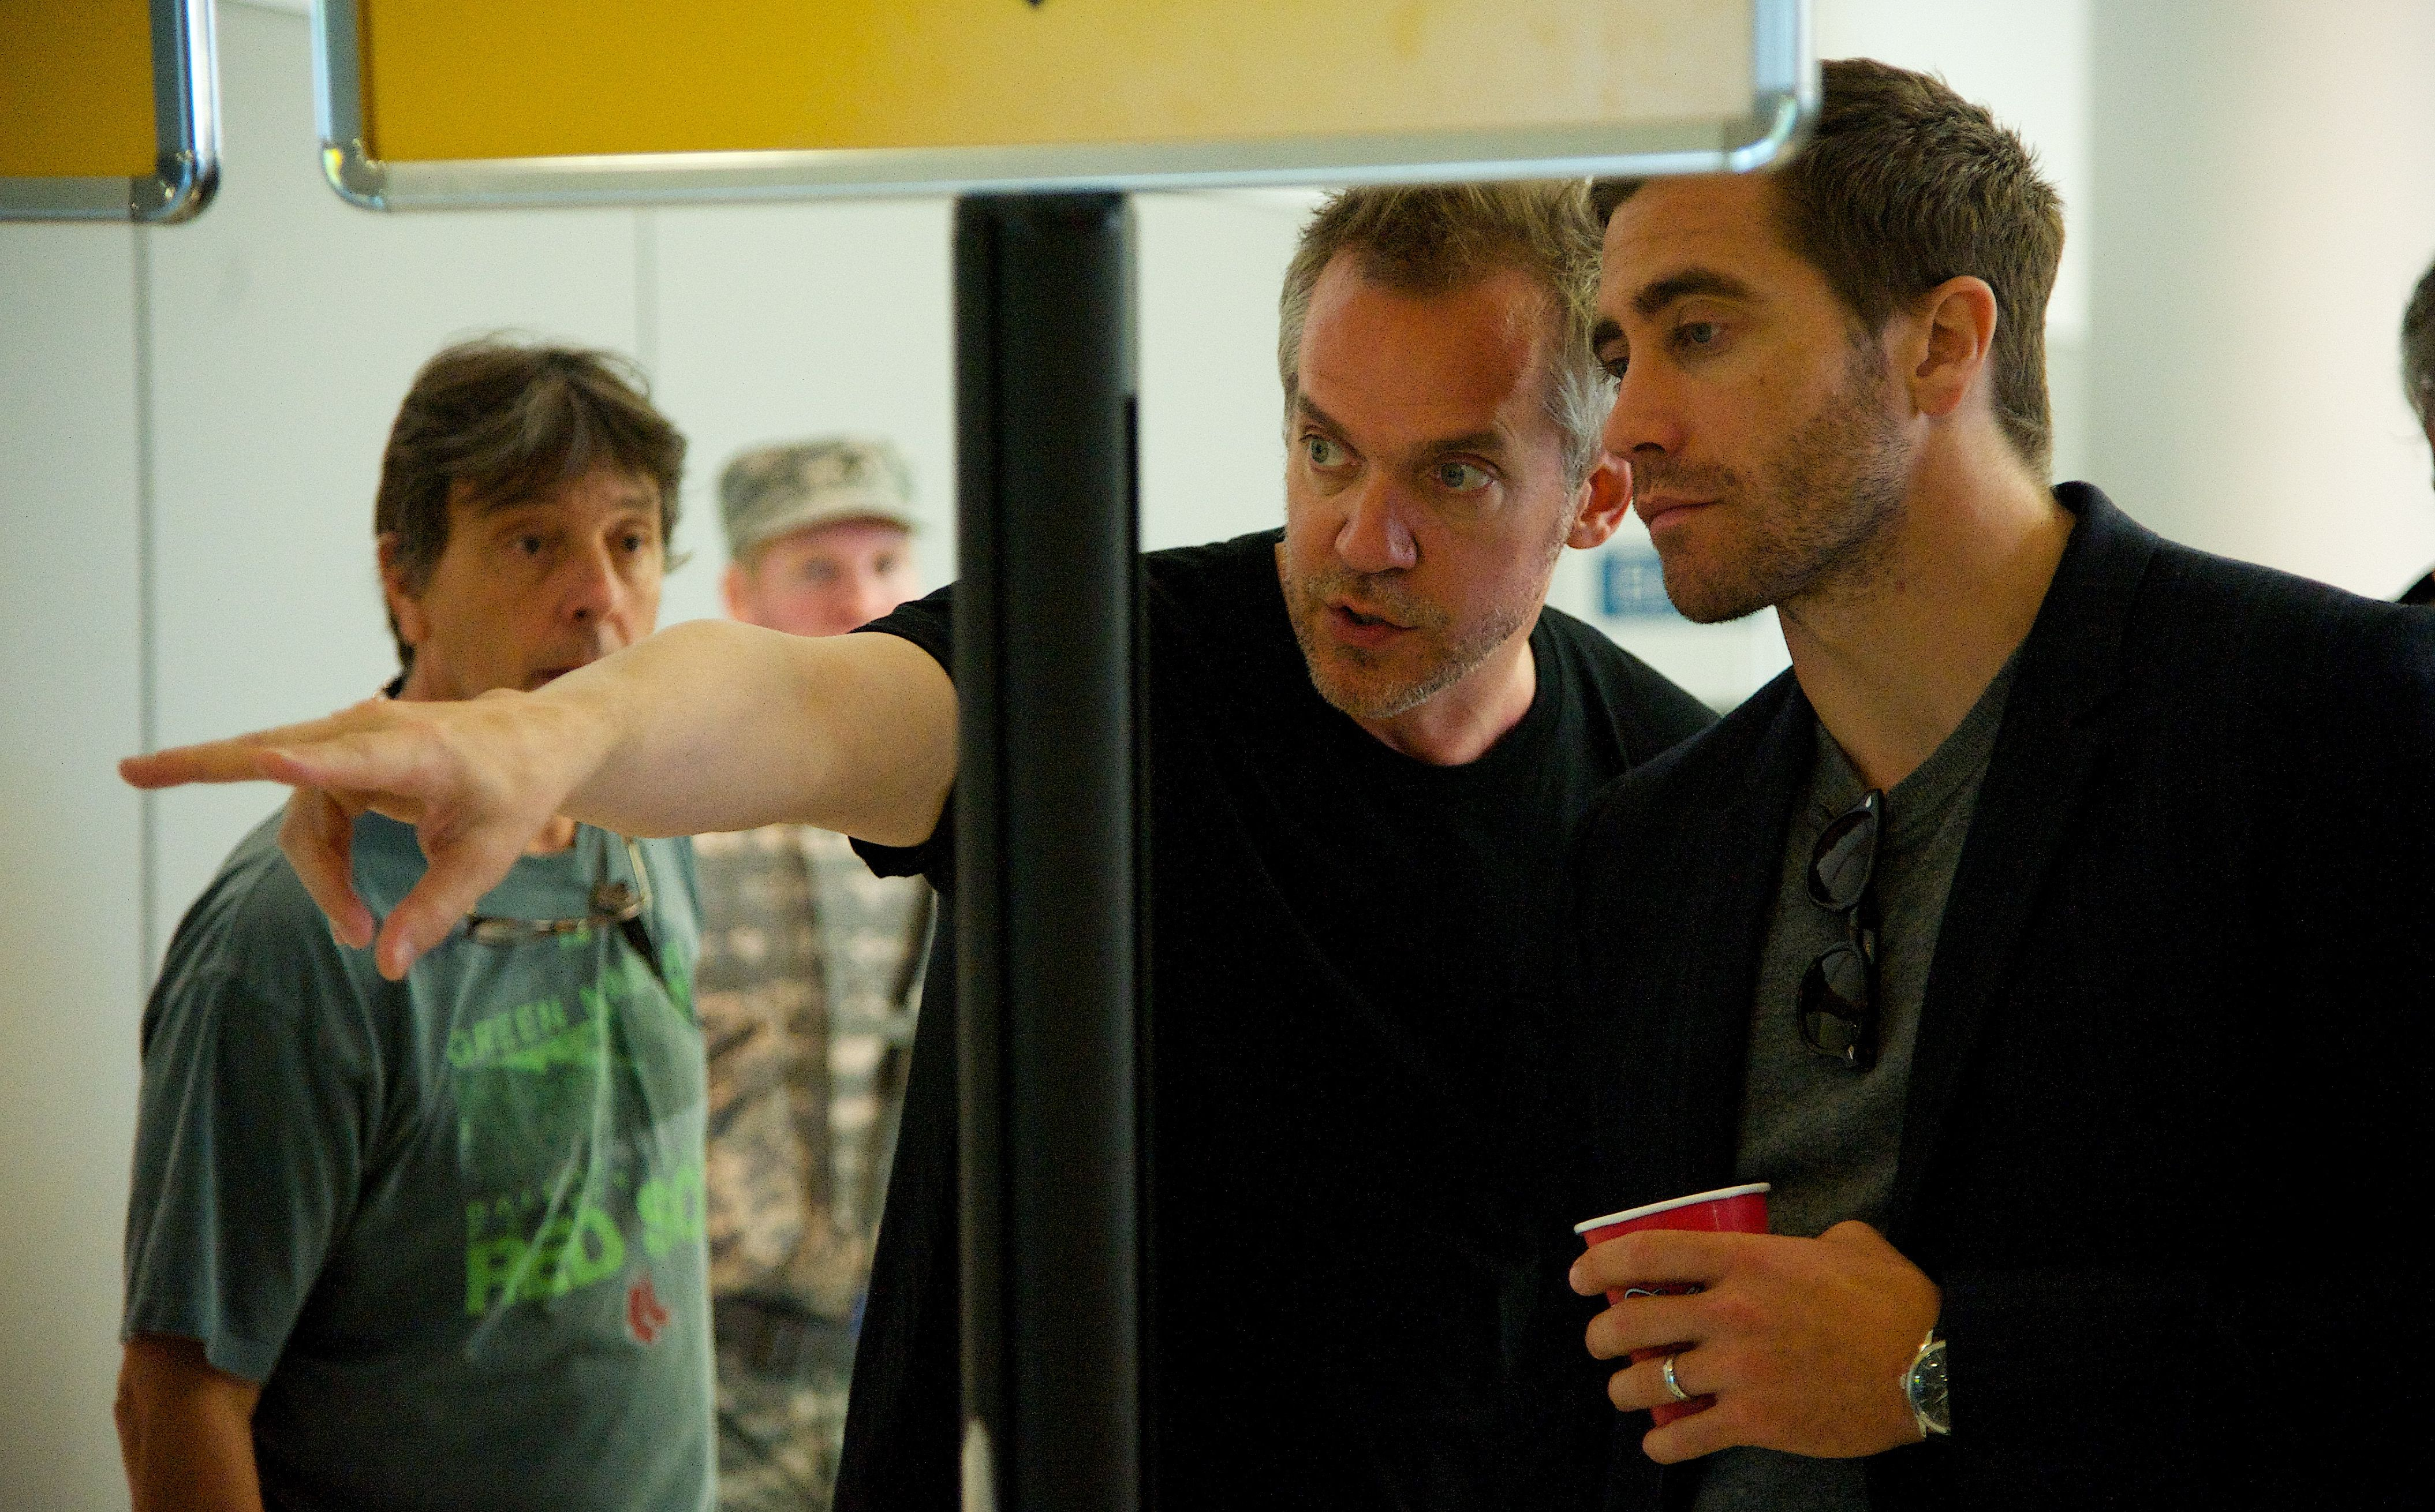 Jake Gyllenhaal and director Jean-Marc Vallée on the set of